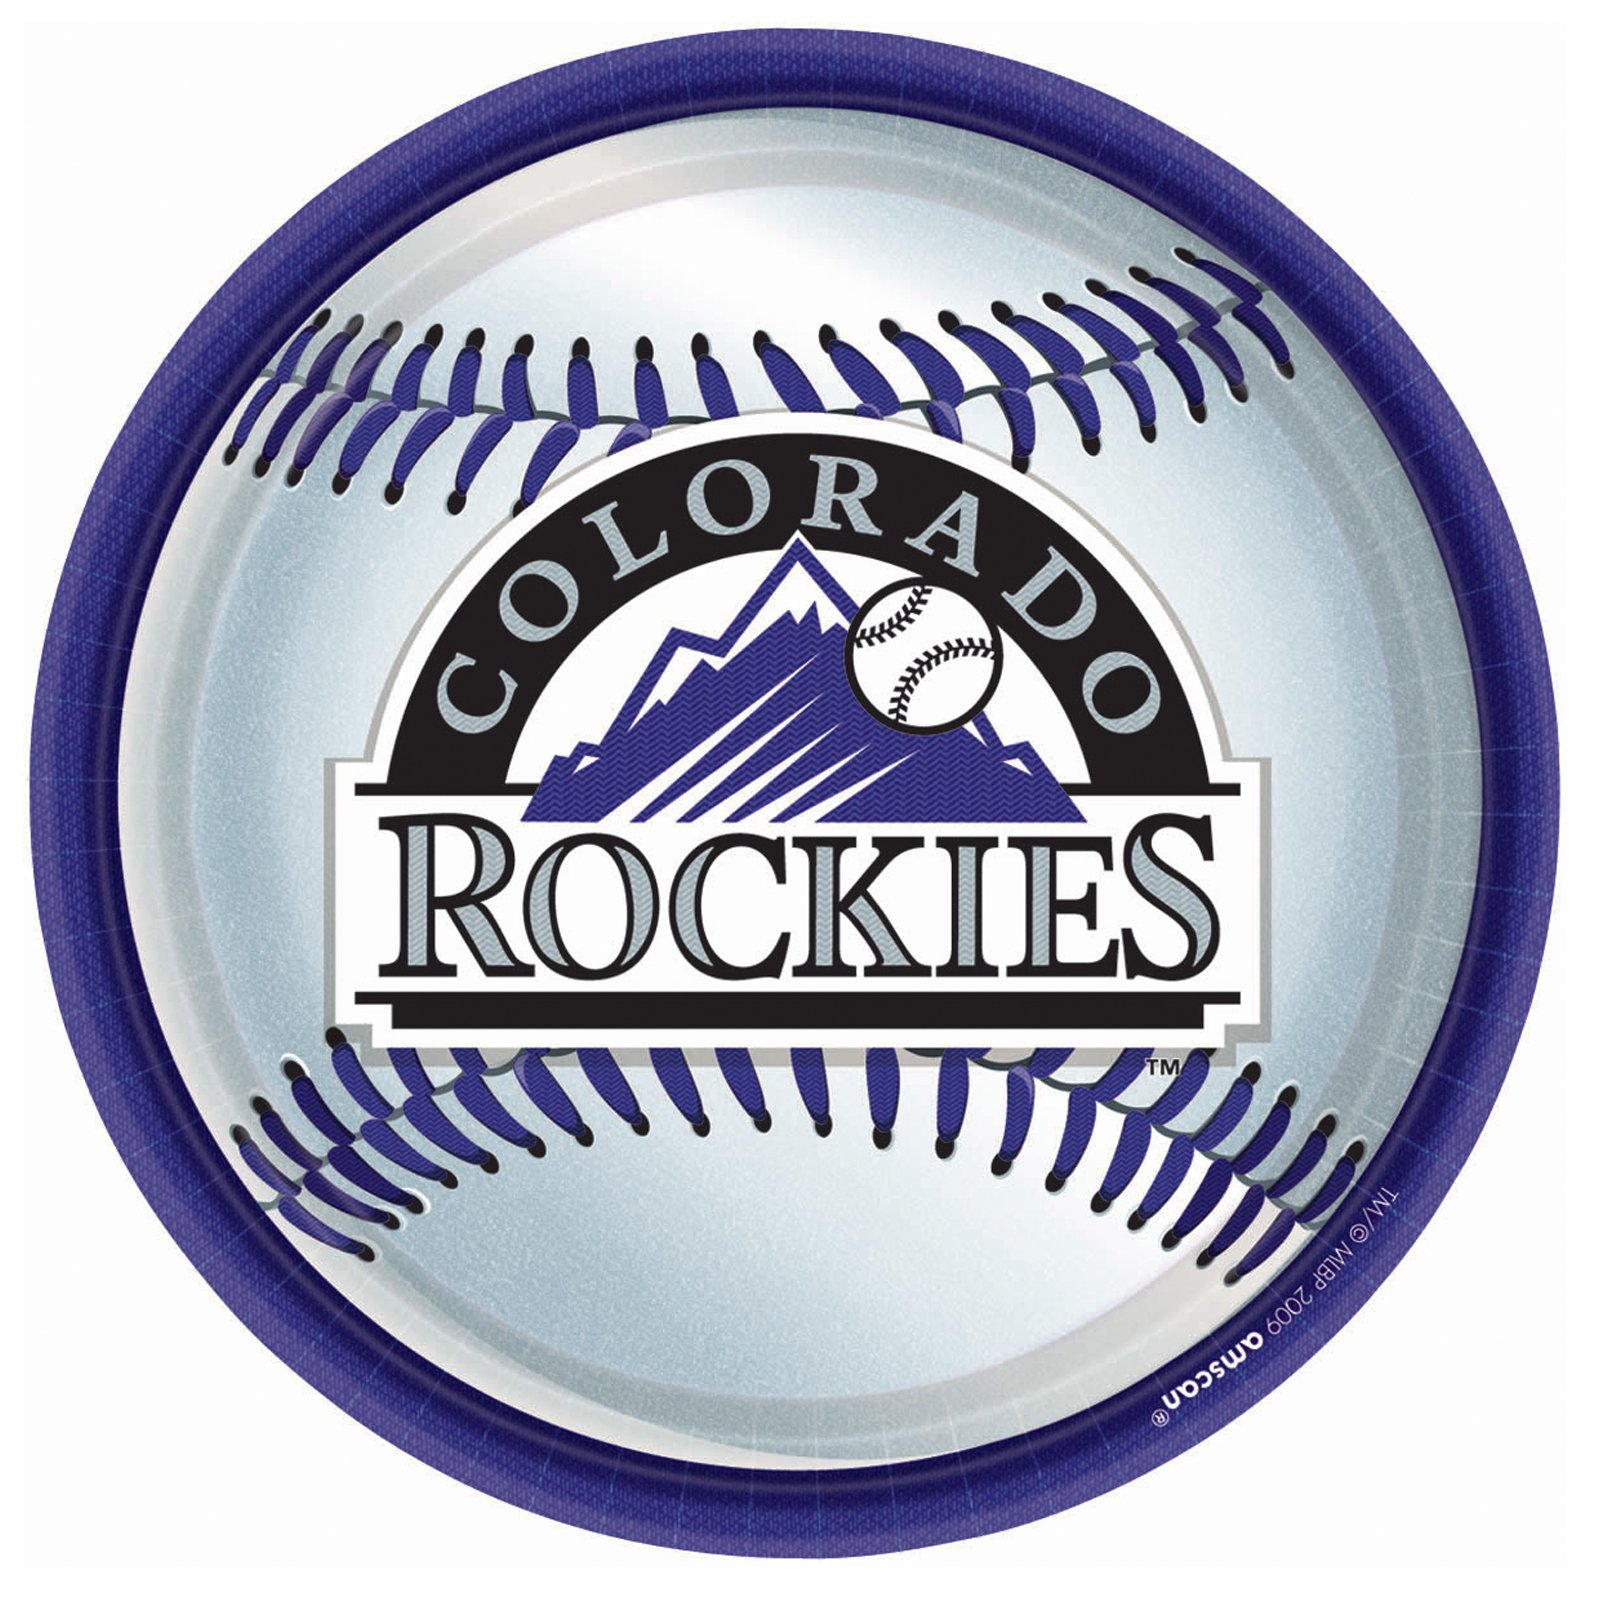 Amazing Colorado Rockies Pictures & Backgrounds